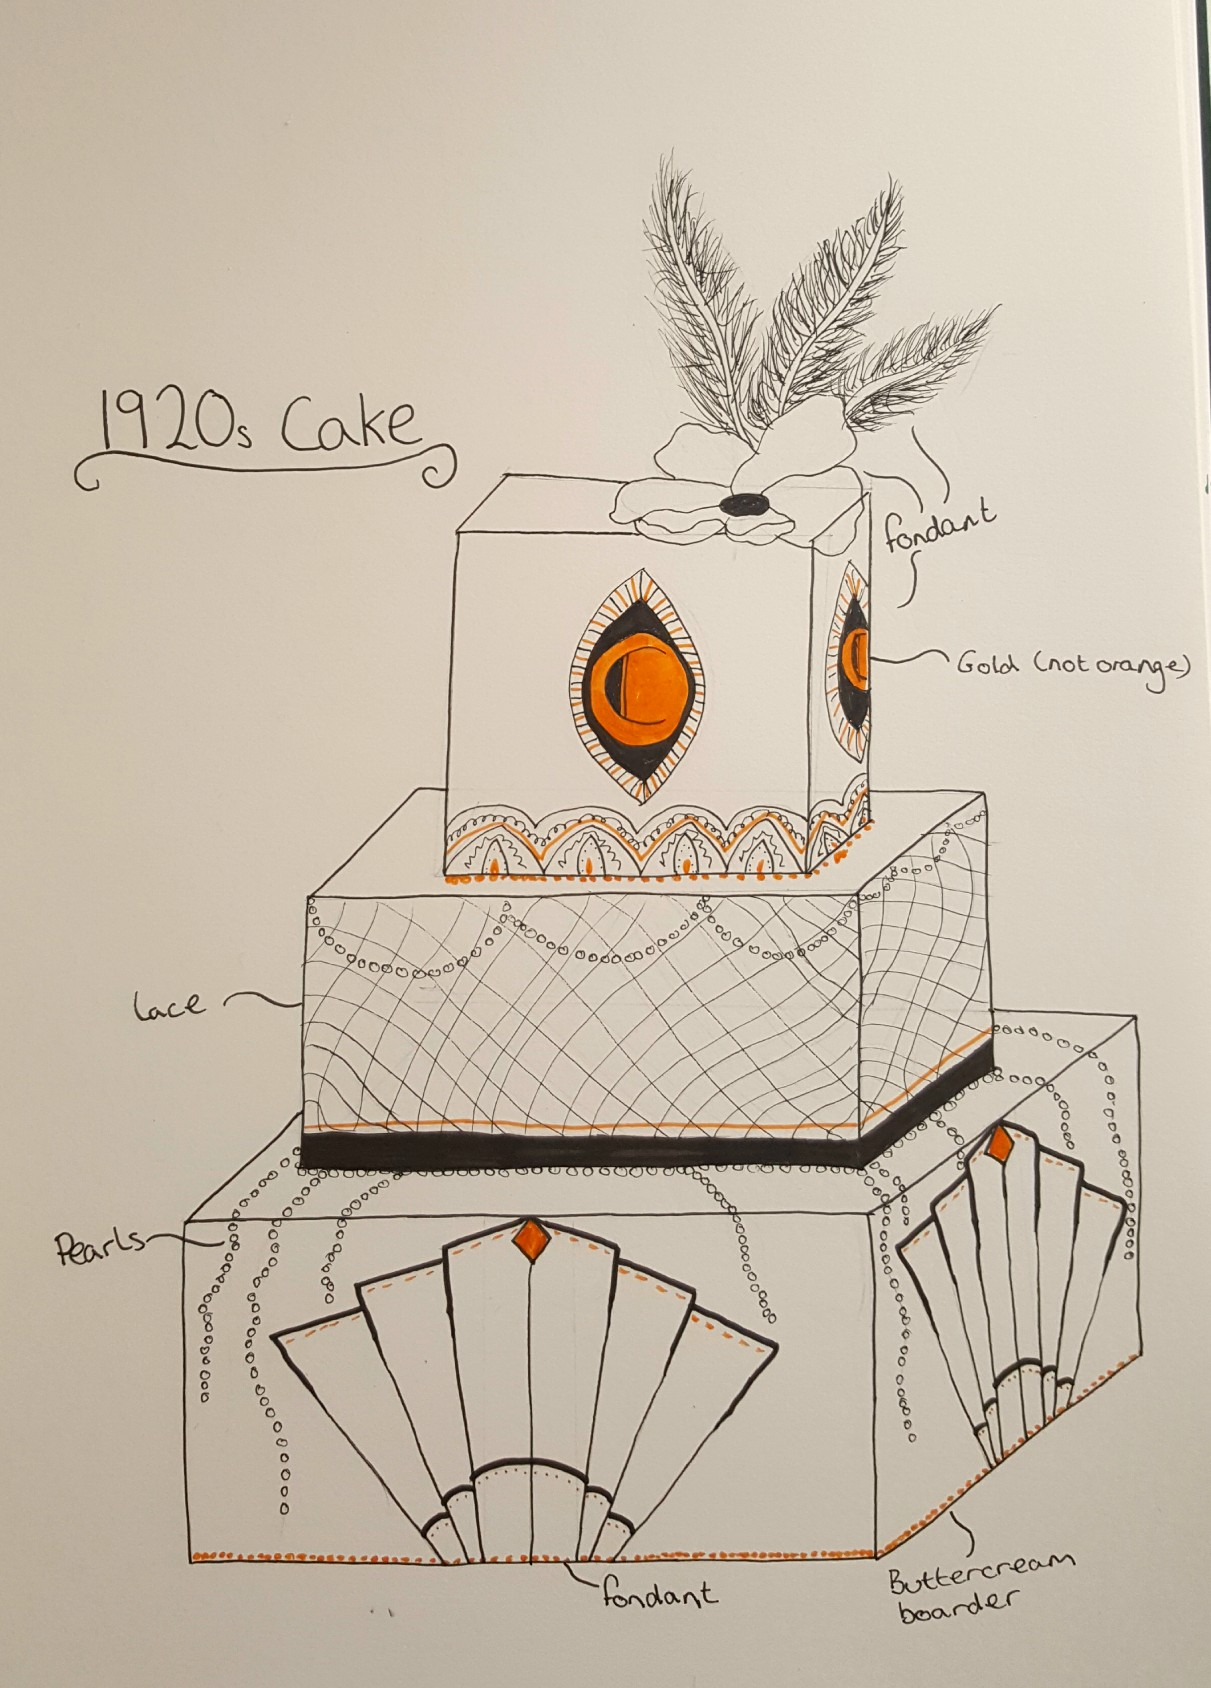 1211x1688 Cake Design Completed 020817 My Drawingsart